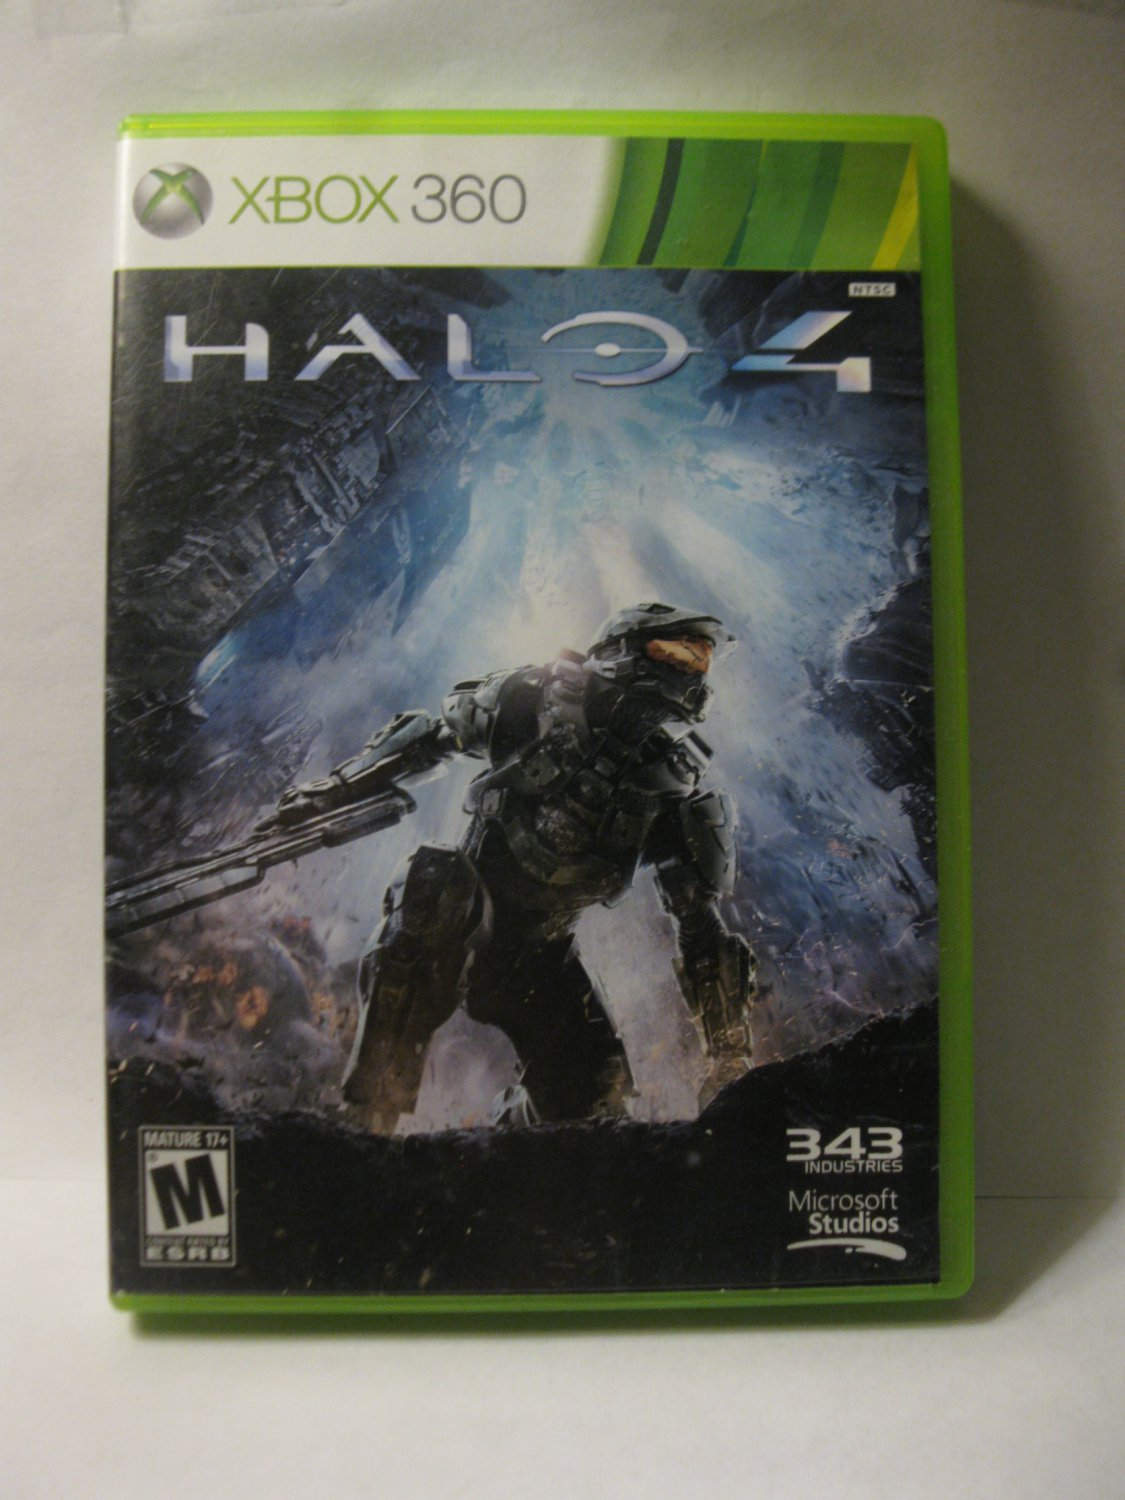 Xbox 360 Video Game: Halo 4 - Case & Disc One only